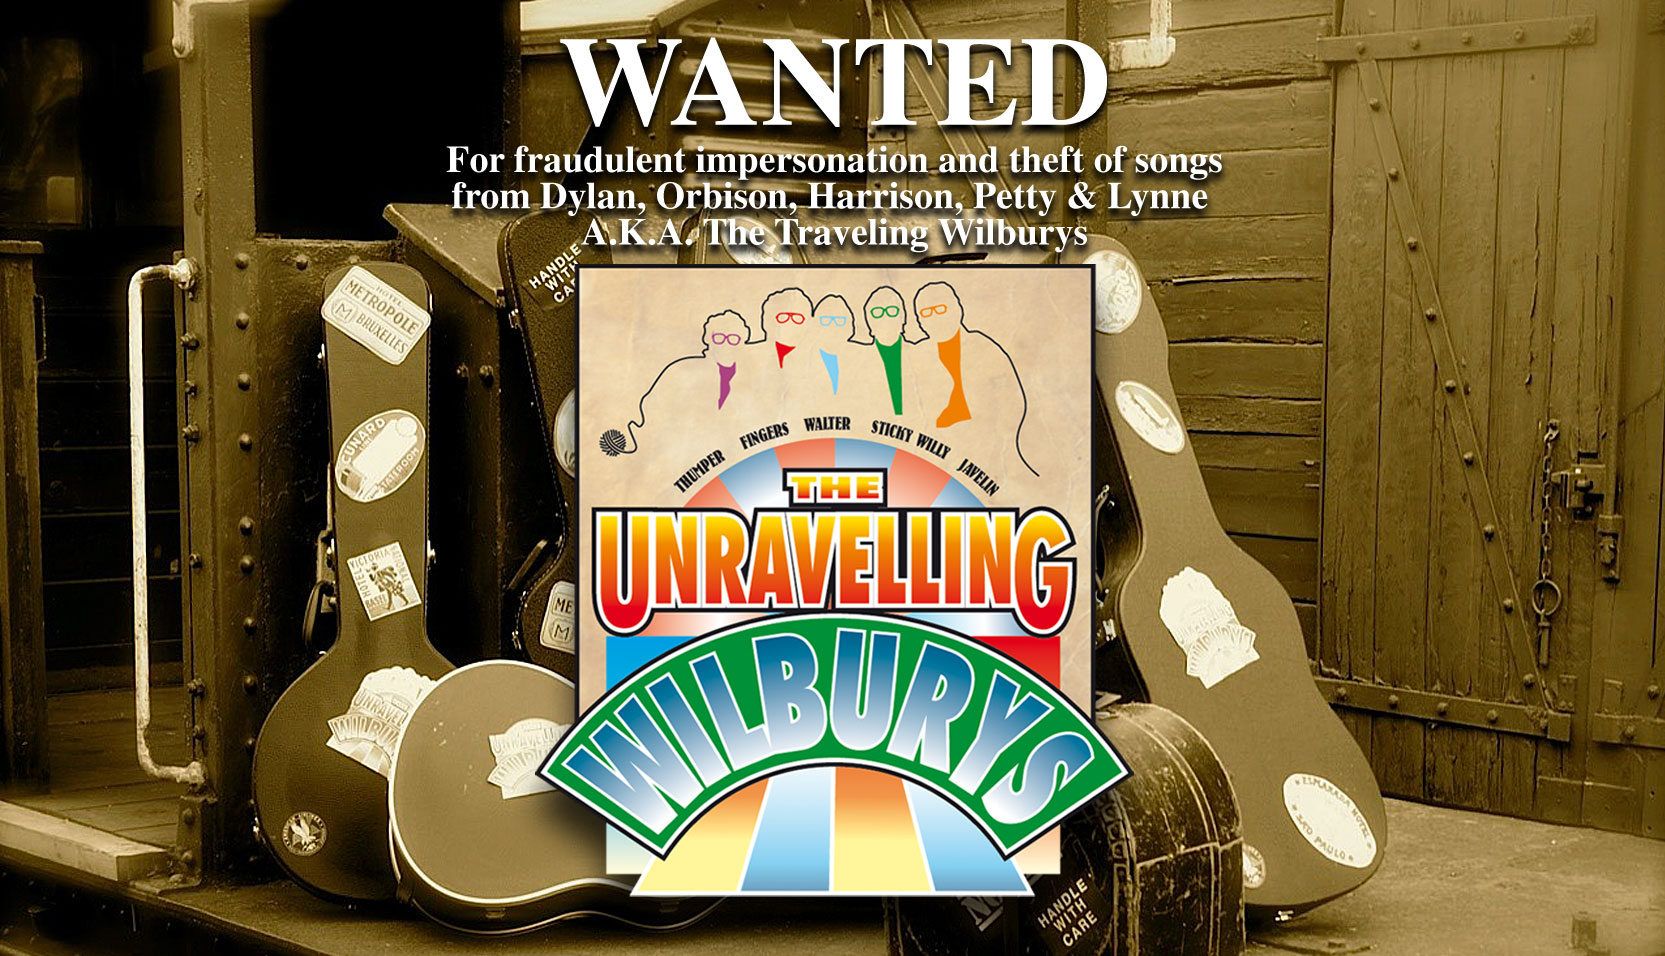 The Unravelling Wilburys Home Page Image